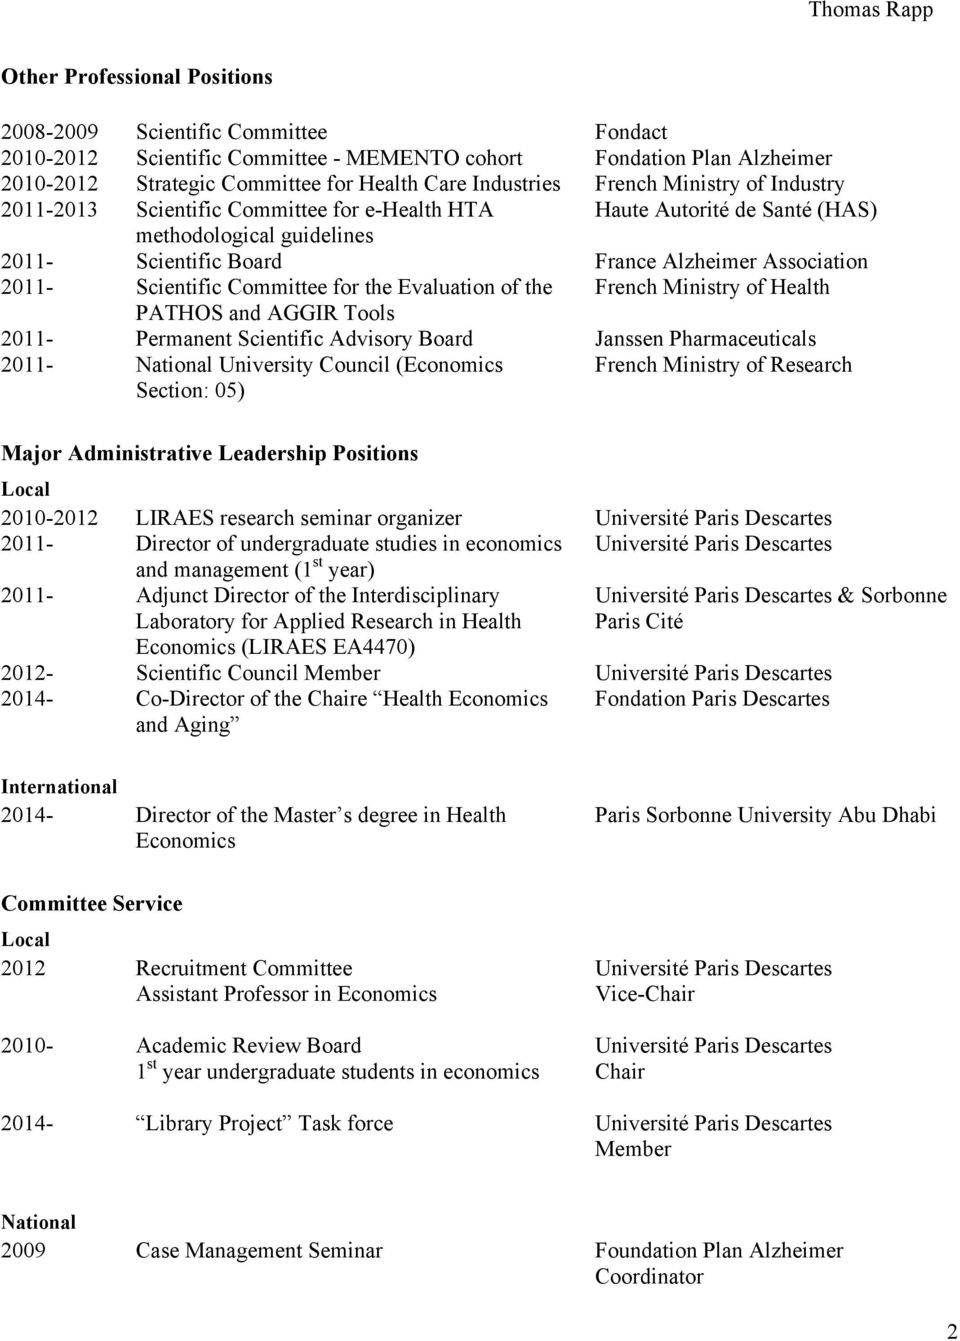 Scientific Committee for the Evaluation of the French Ministry of Health PATHOS and AGGIR Tools 2011- Permanent Scientific Advisory Board Janssen Pharmaceuticals 2011- National University Council